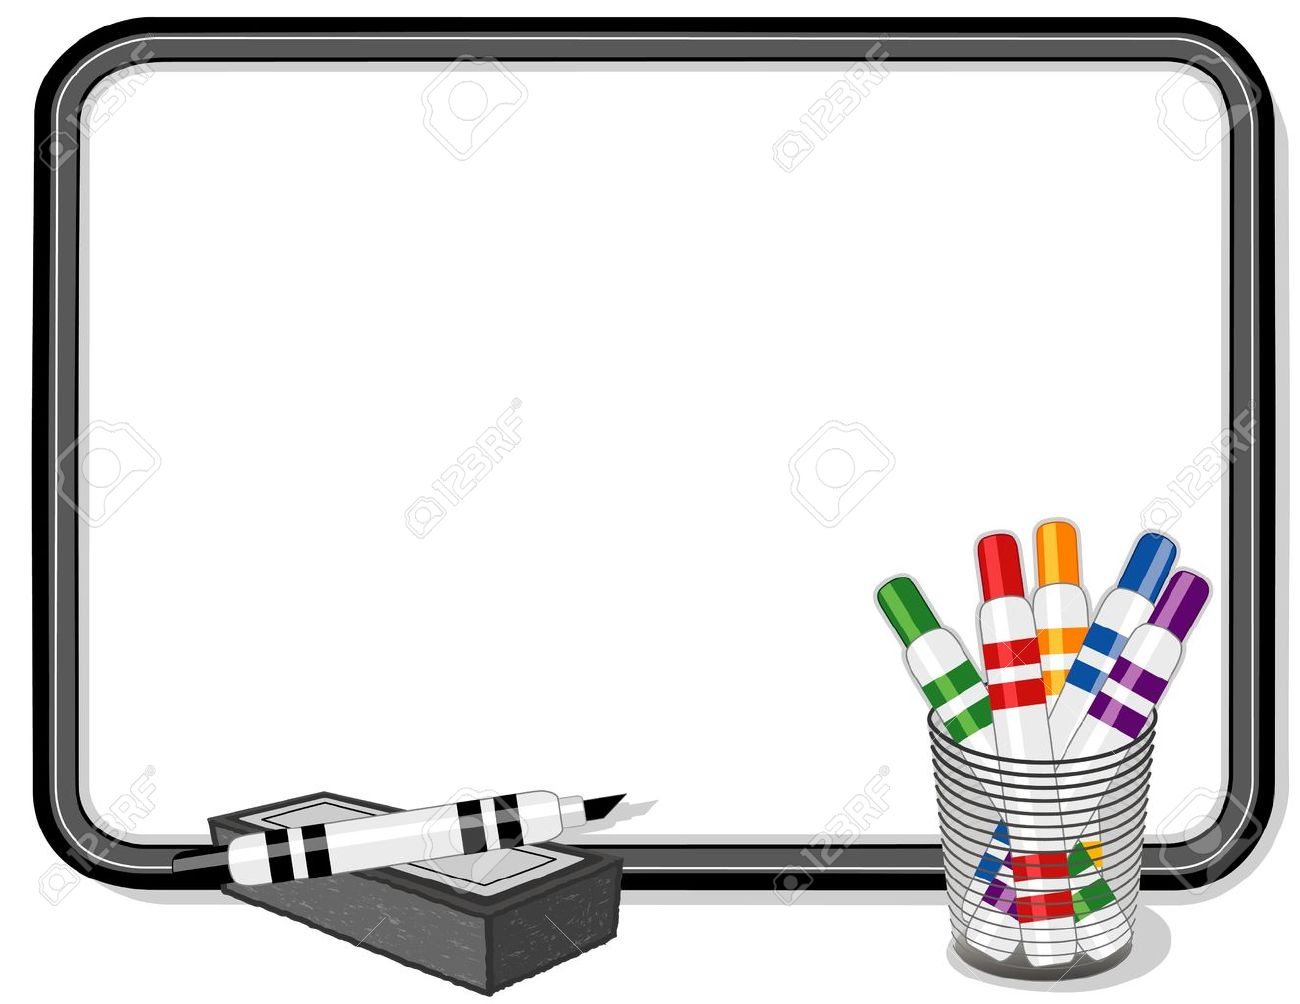 whiteboard clipart